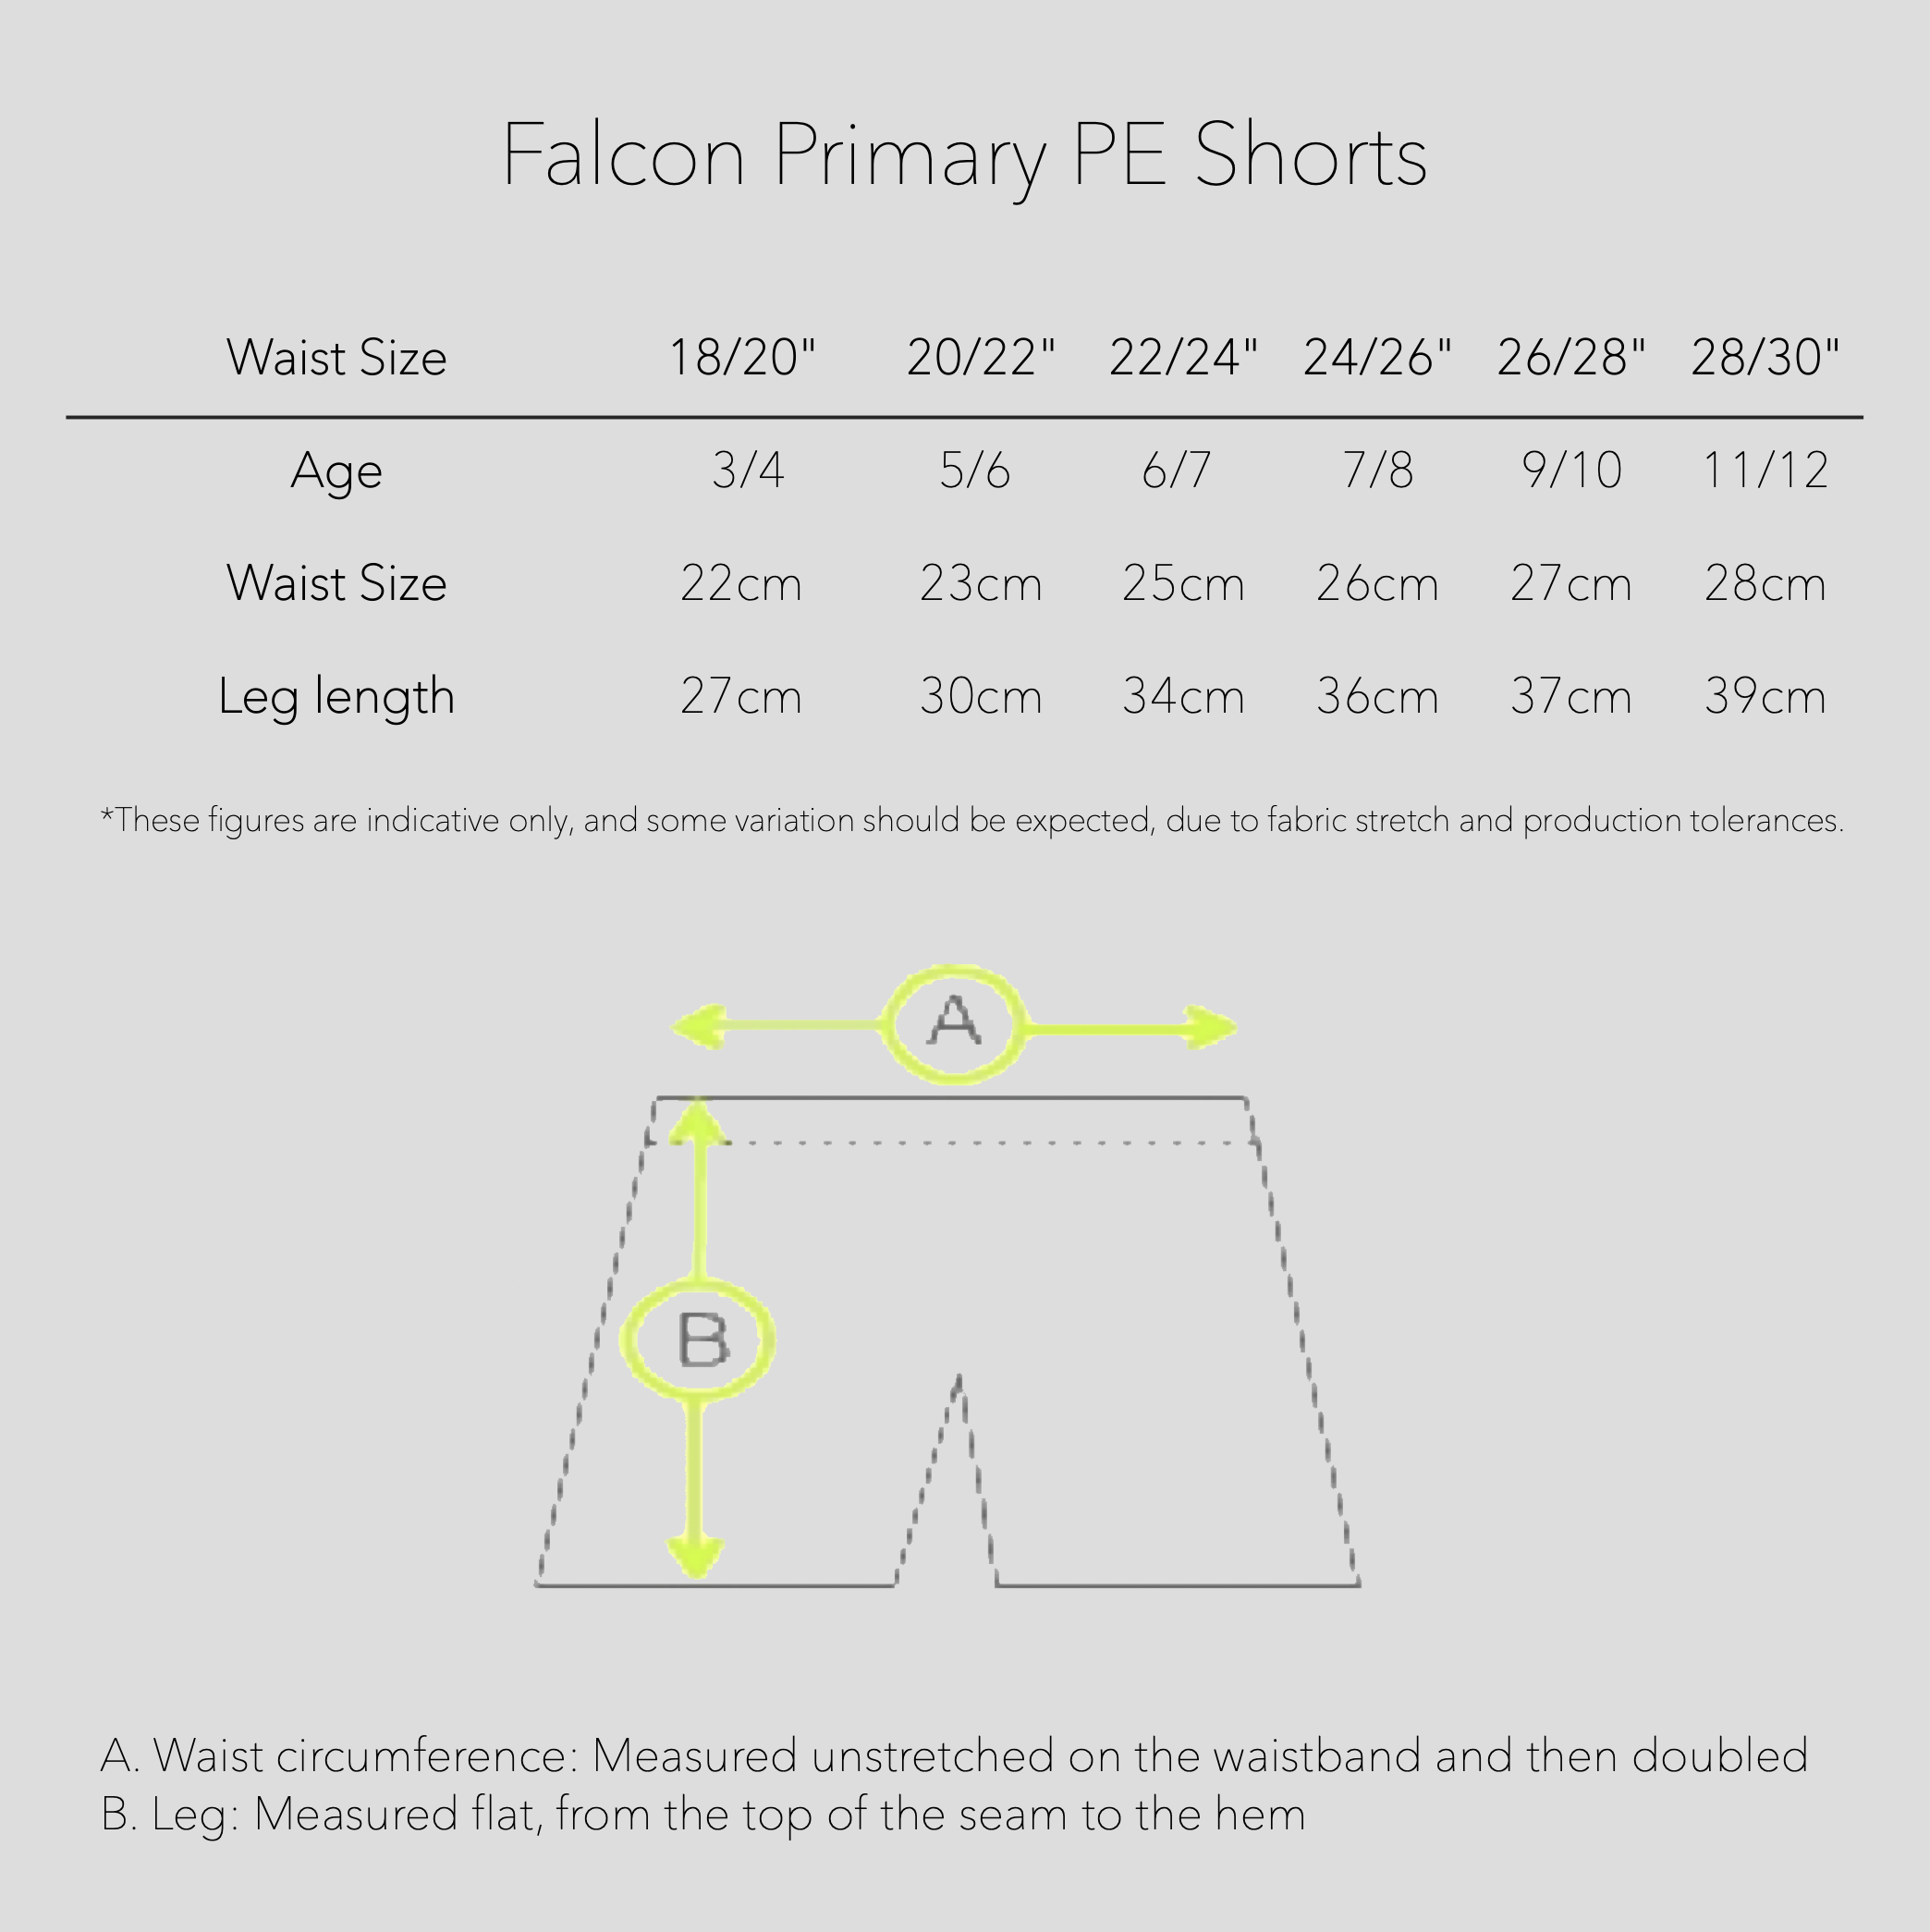 Royal Falcon Primary PE Shorts